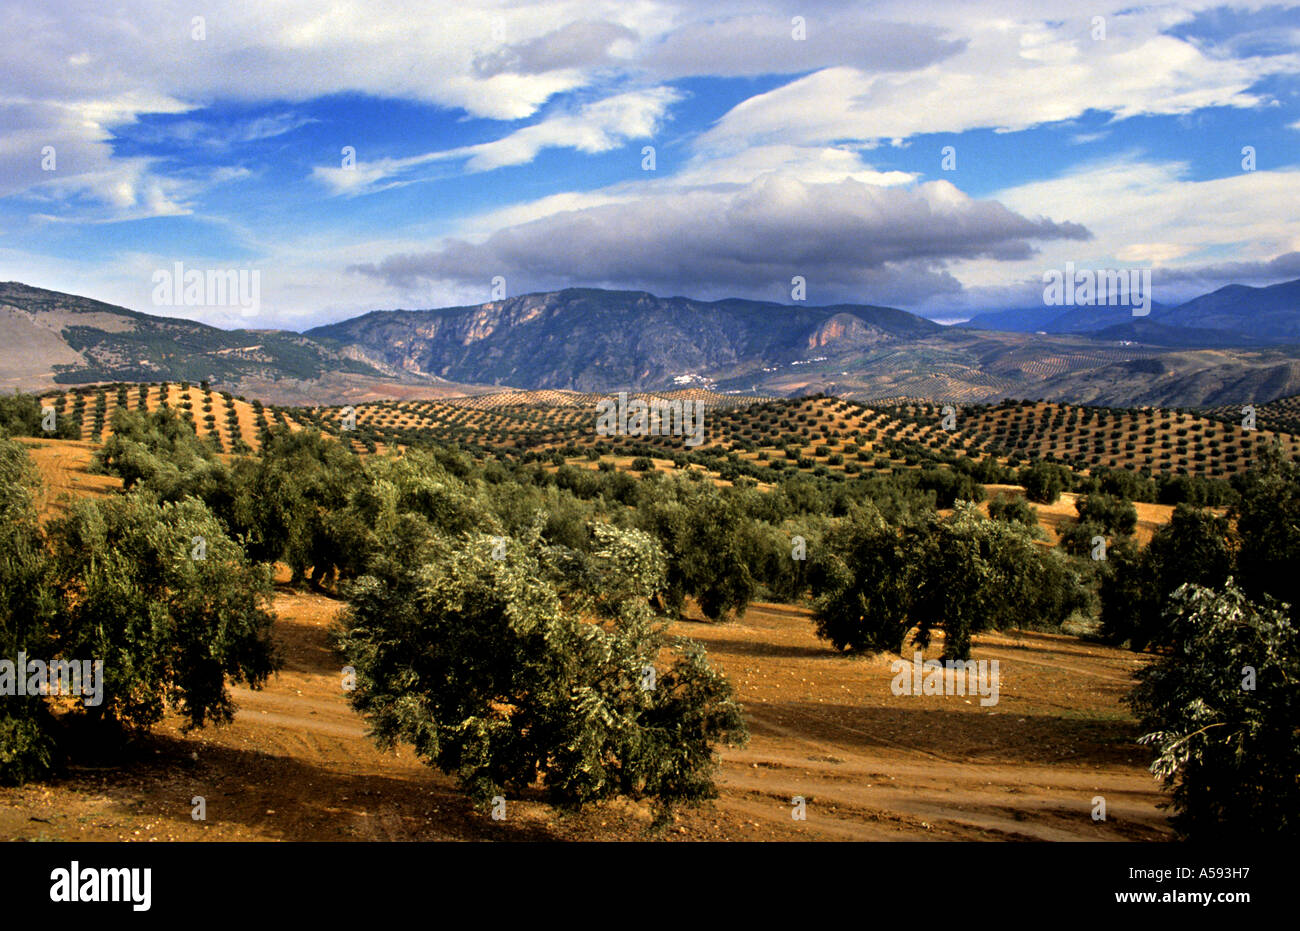 Olive trees in Andalucia Spain Spanish Landscape mountains sun - Stock Image